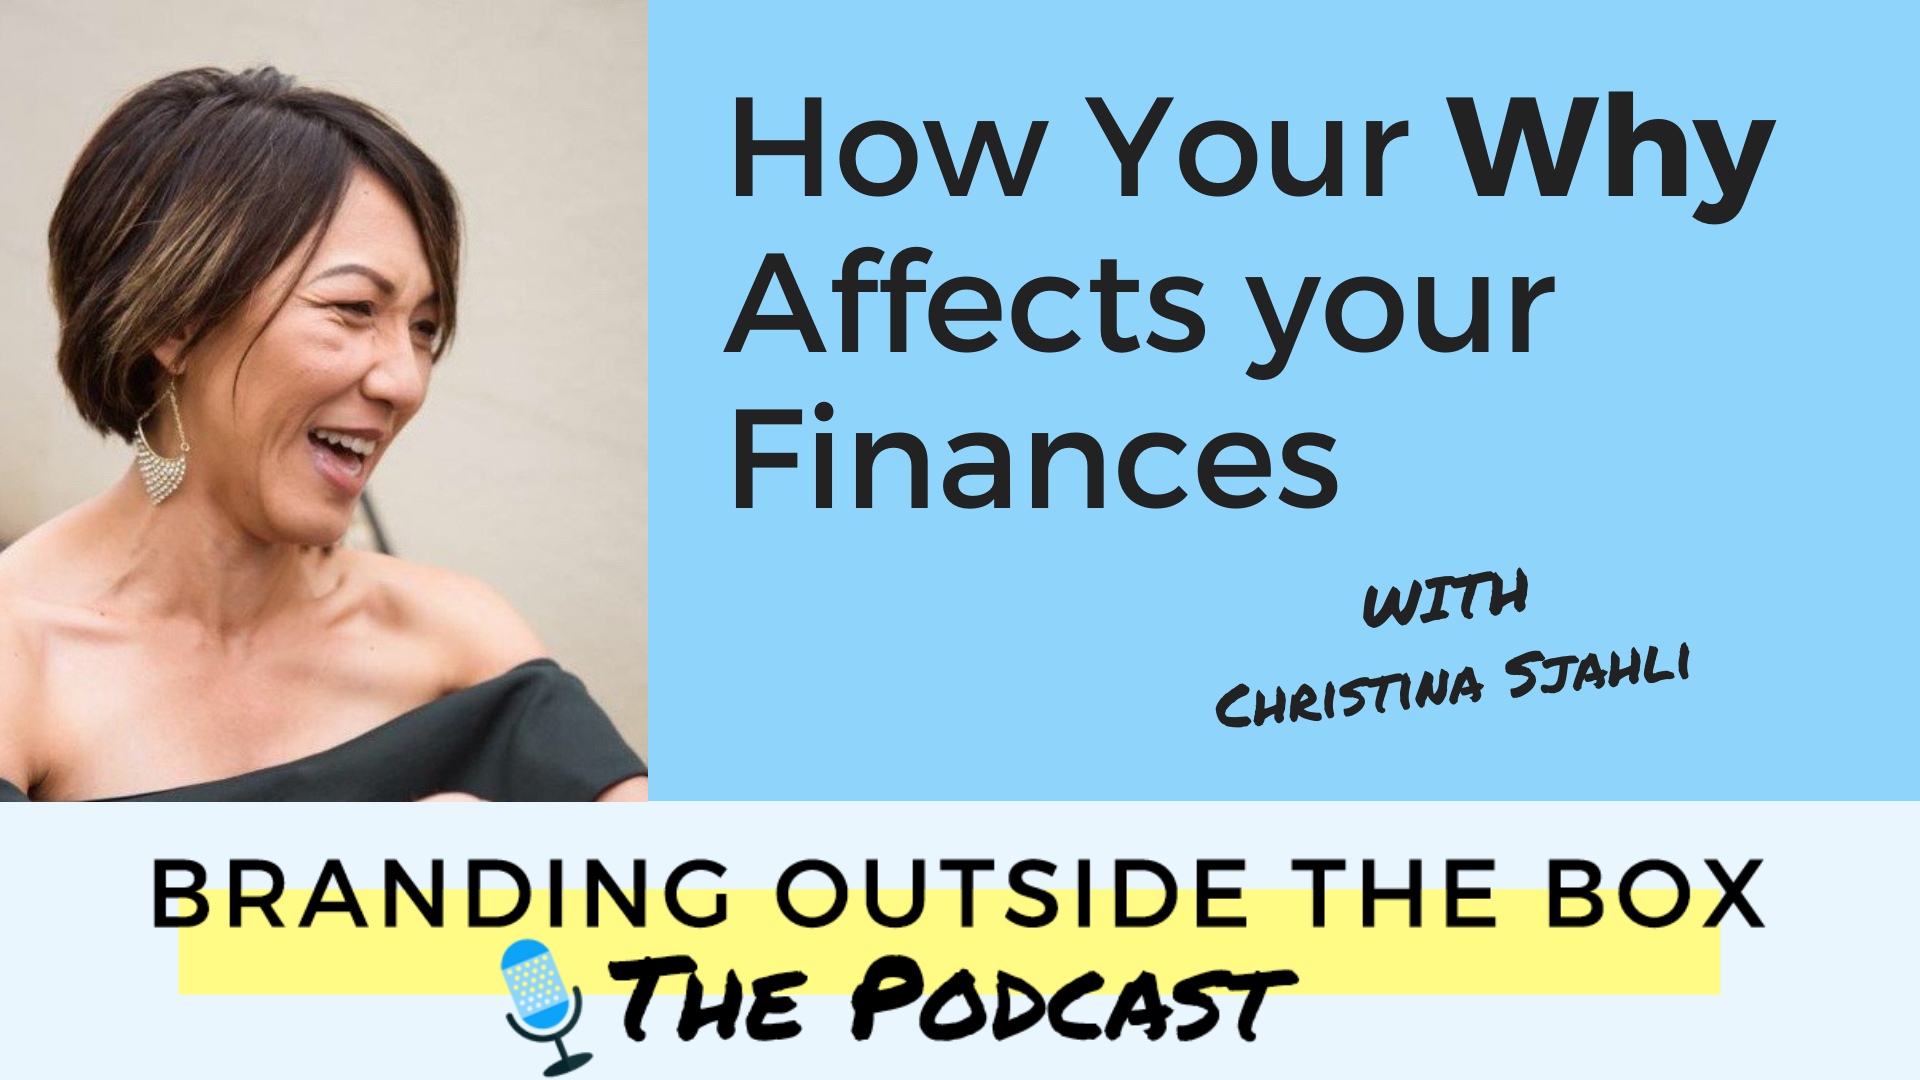 How Your Why Affects Your Finances